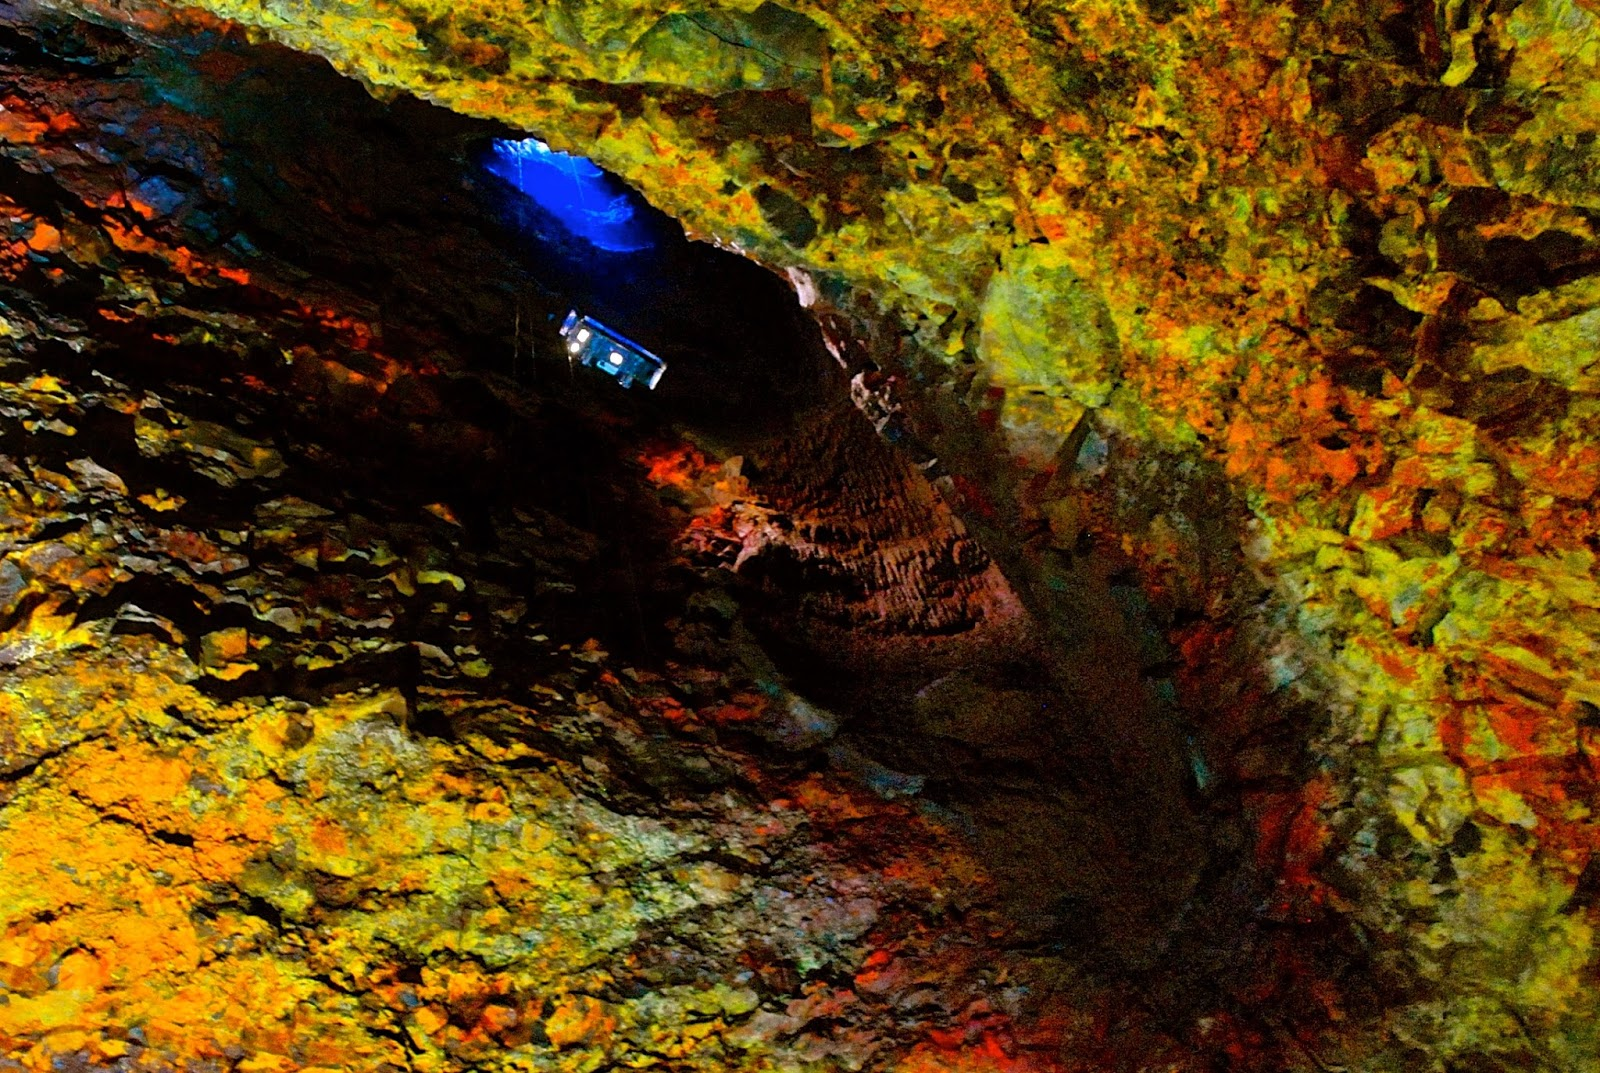 Things to do in Reykjavik Iceland : Take a tour inside the Thrihnukagigur volcano.